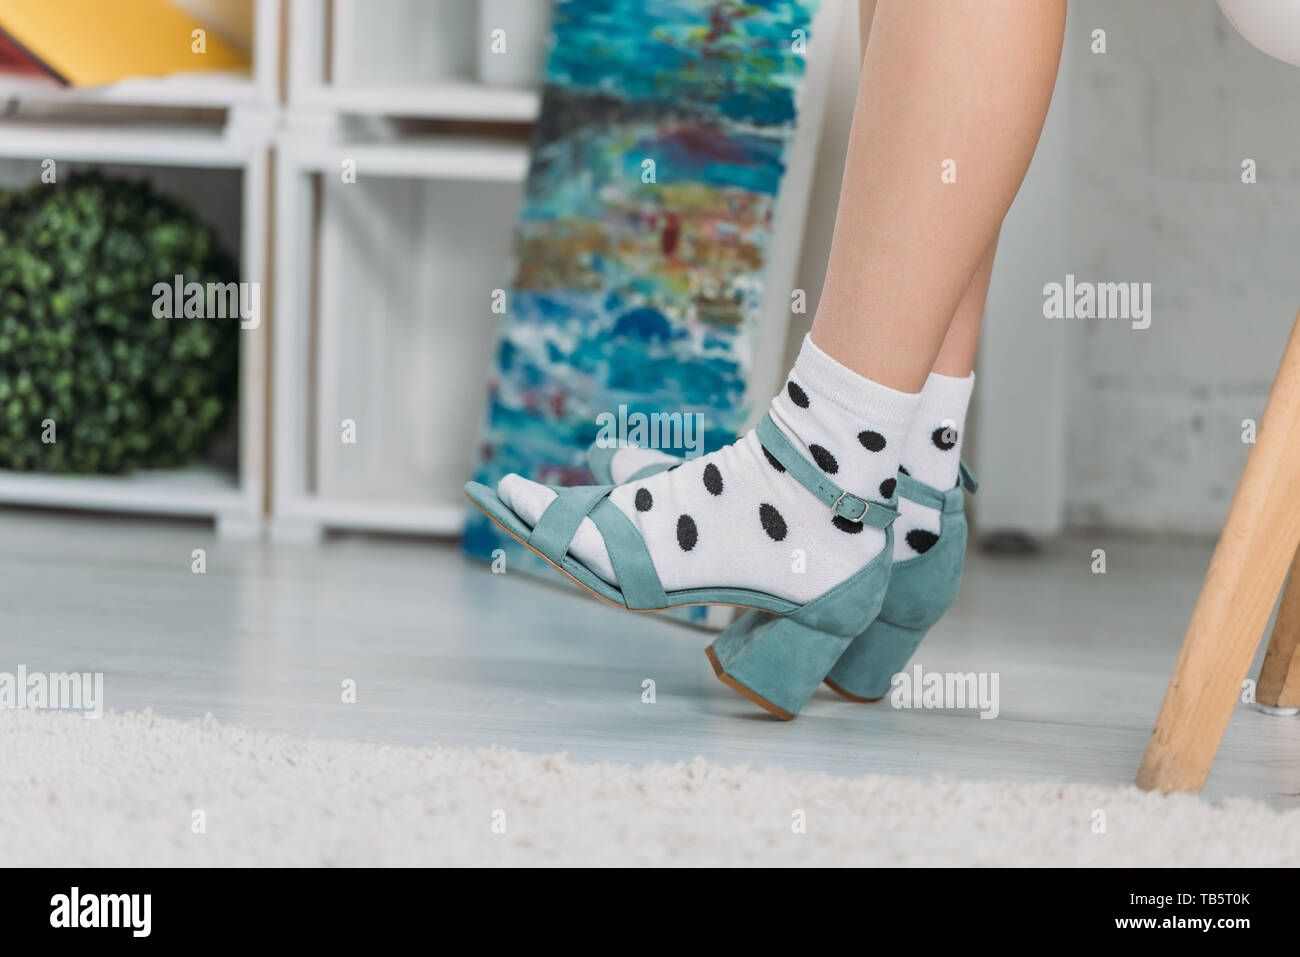 Sandals Socks Fotos Immaginiamp; Alamy Woman Stock q5Rj34LA